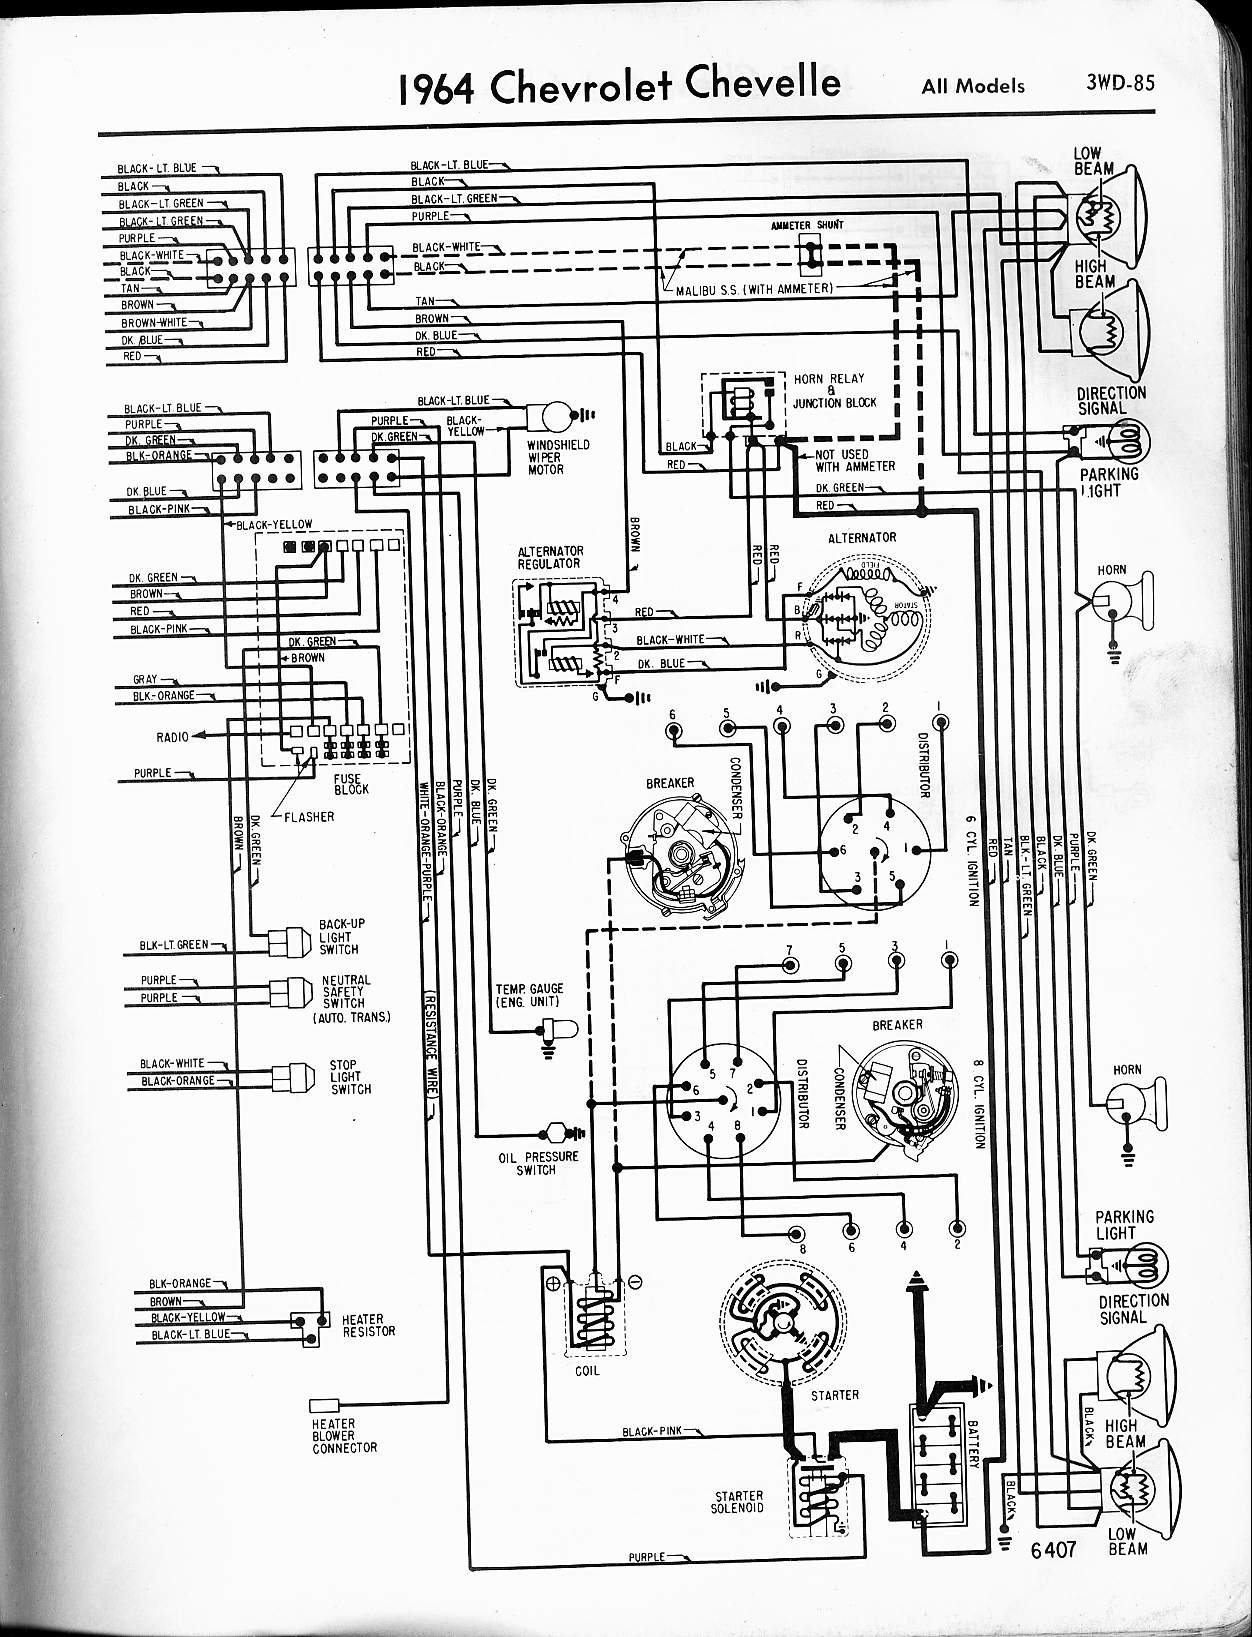 MWireChev64_3WD 085 chevy diagrams 65 comet wiring harness at pacquiaovsvargaslive.co